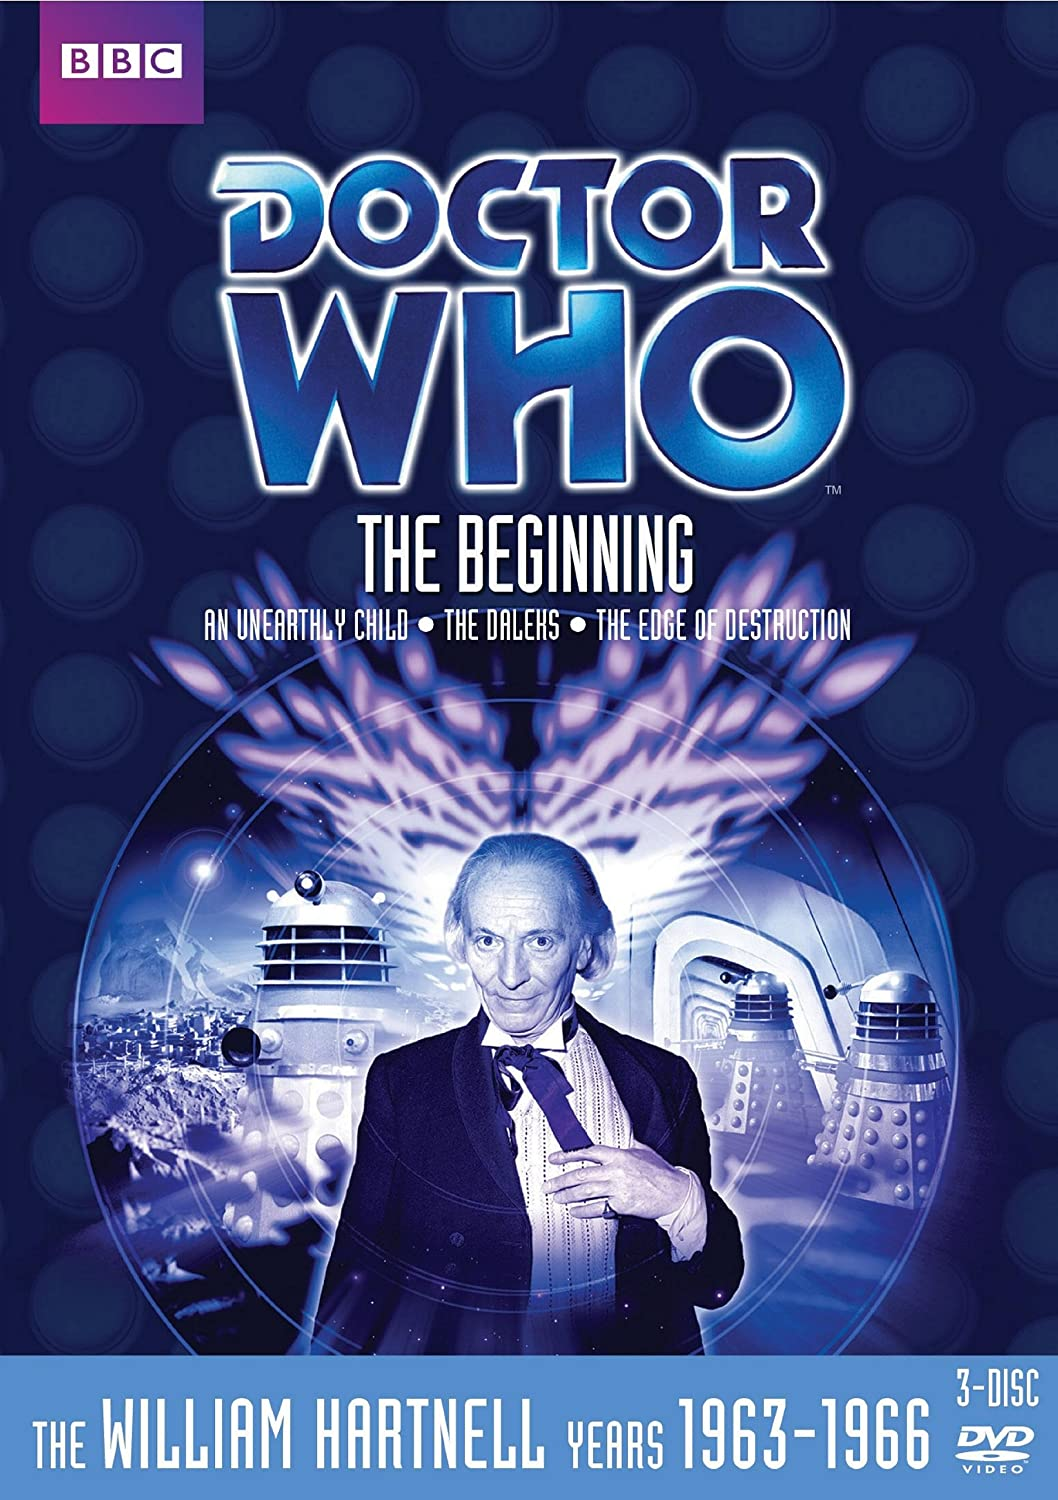 Doctor Who: The Beginning (An Unearthly Child / The Daleks / The Edge of Destruction)